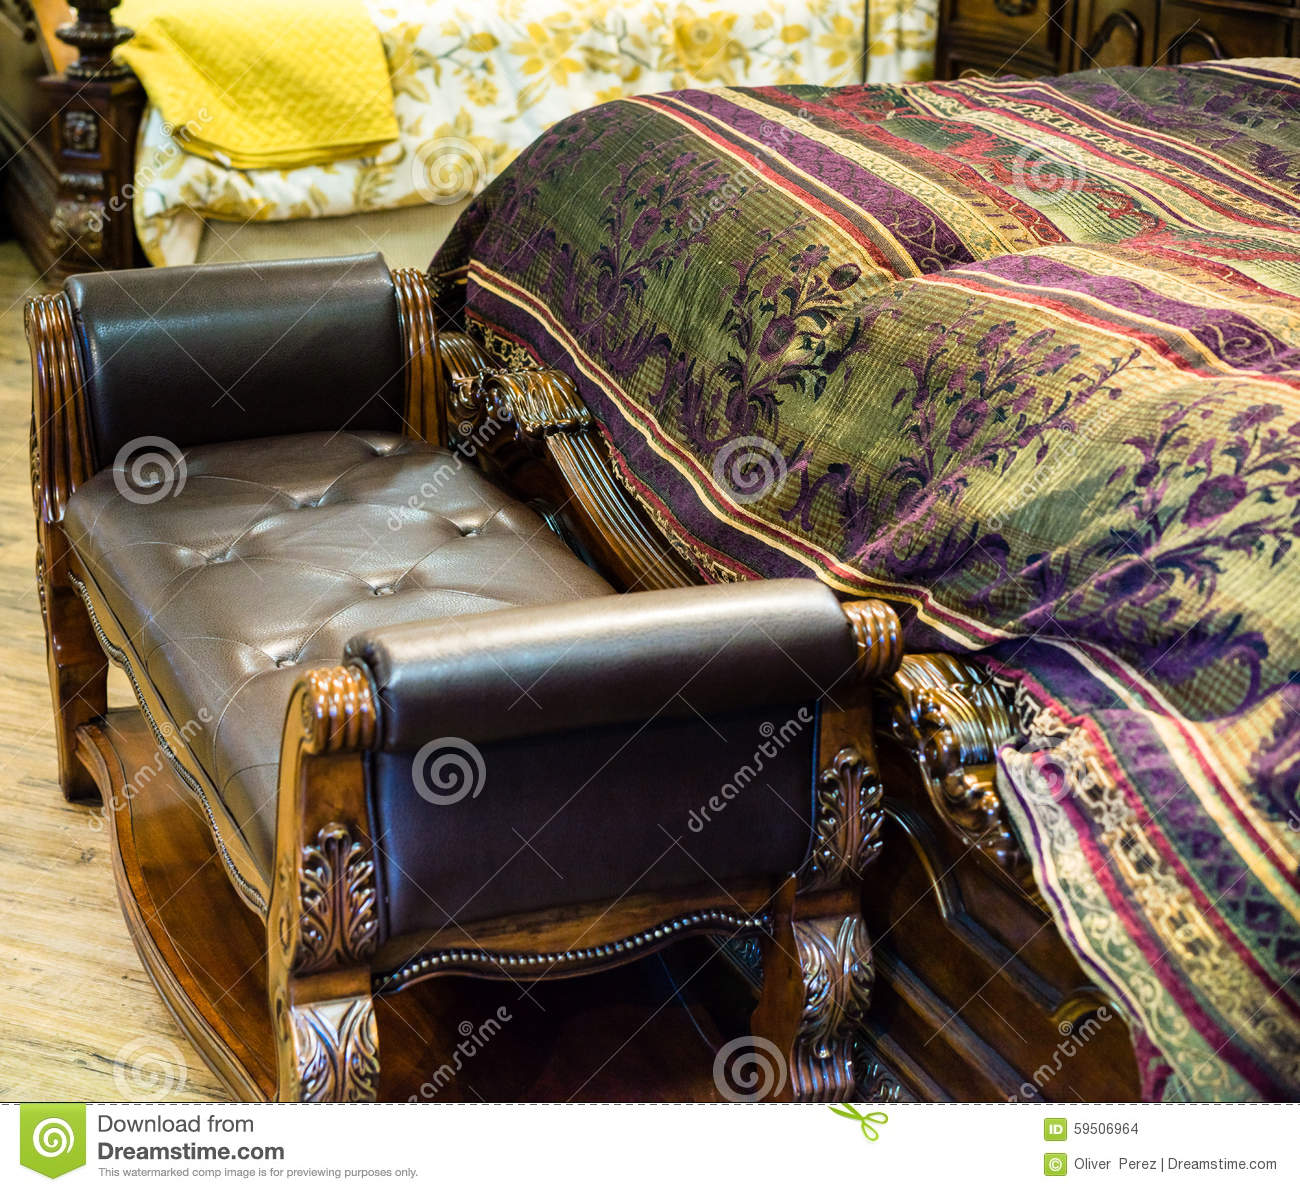 Swell Bed Foot Stool Stock Photo Image Of Furniture Interior Andrewgaddart Wooden Chair Designs For Living Room Andrewgaddartcom